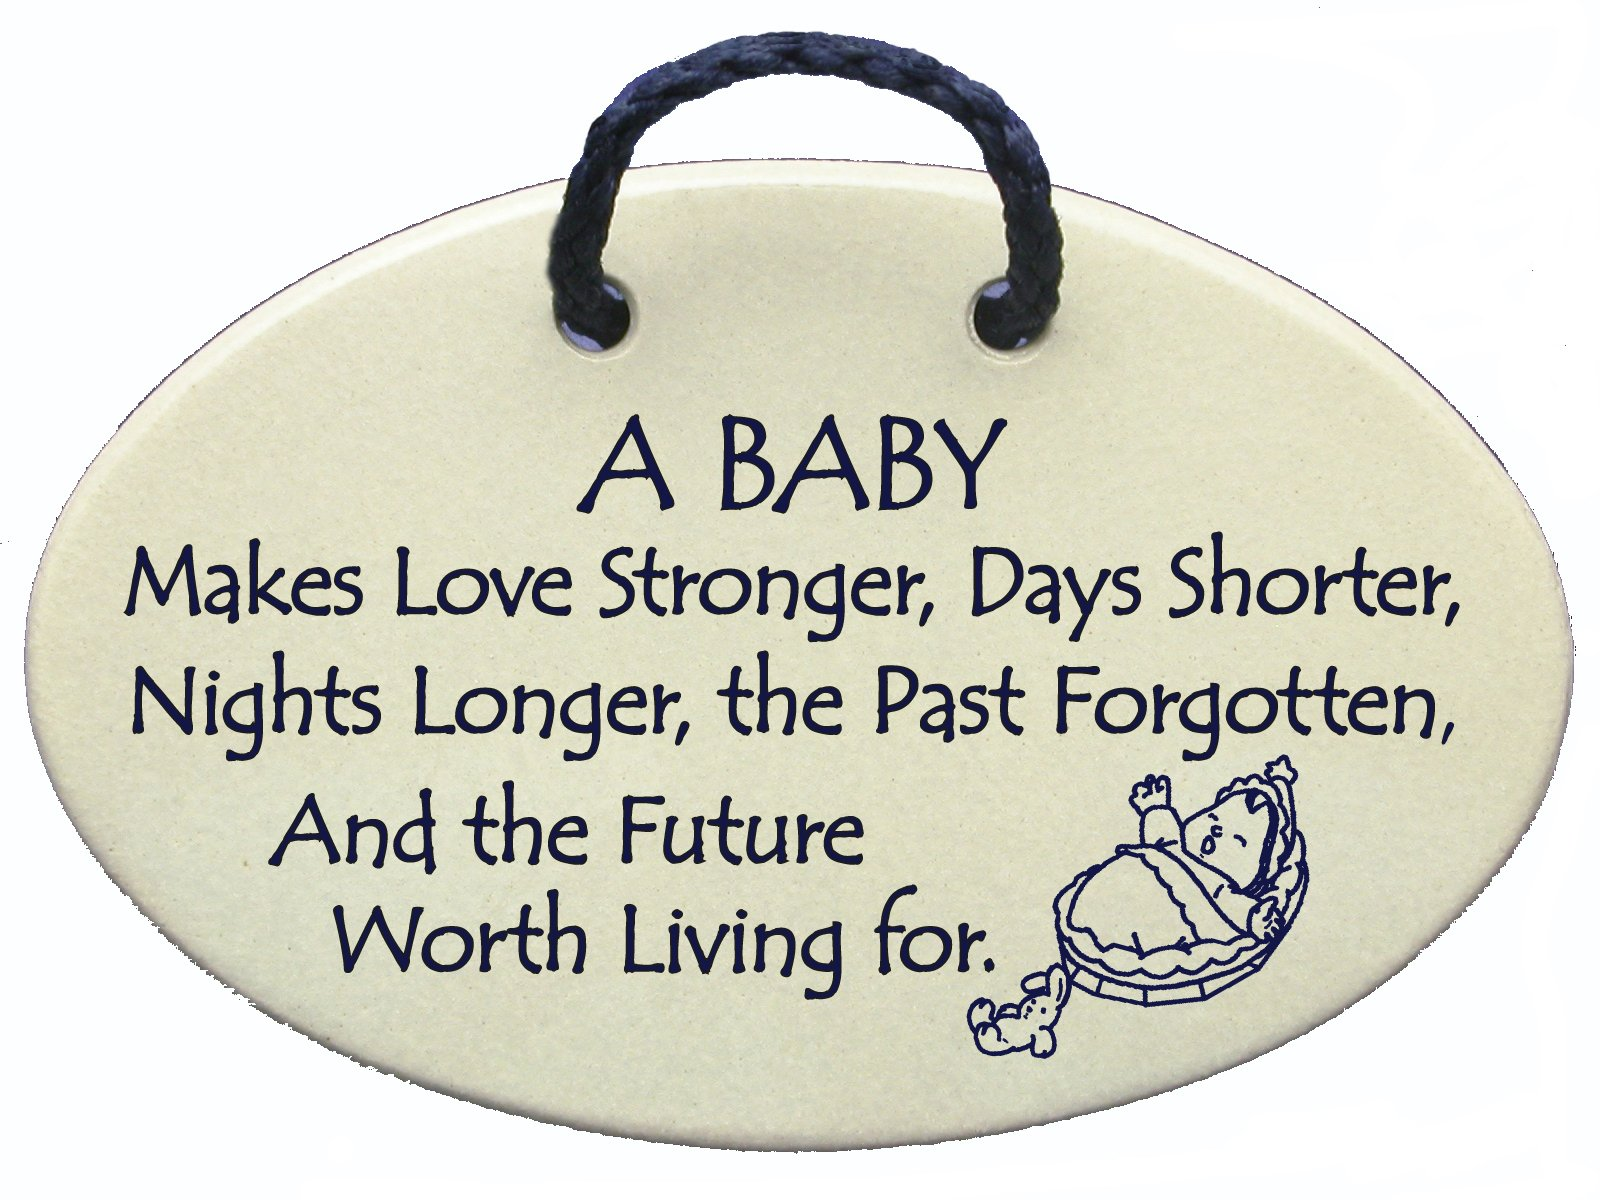 A BABY Makes Love Stronger, Days shorter, Nights longer, the Past forgotten and the Future worth living for. Ceramic wall plaques handmade in the USA for over 30 years.